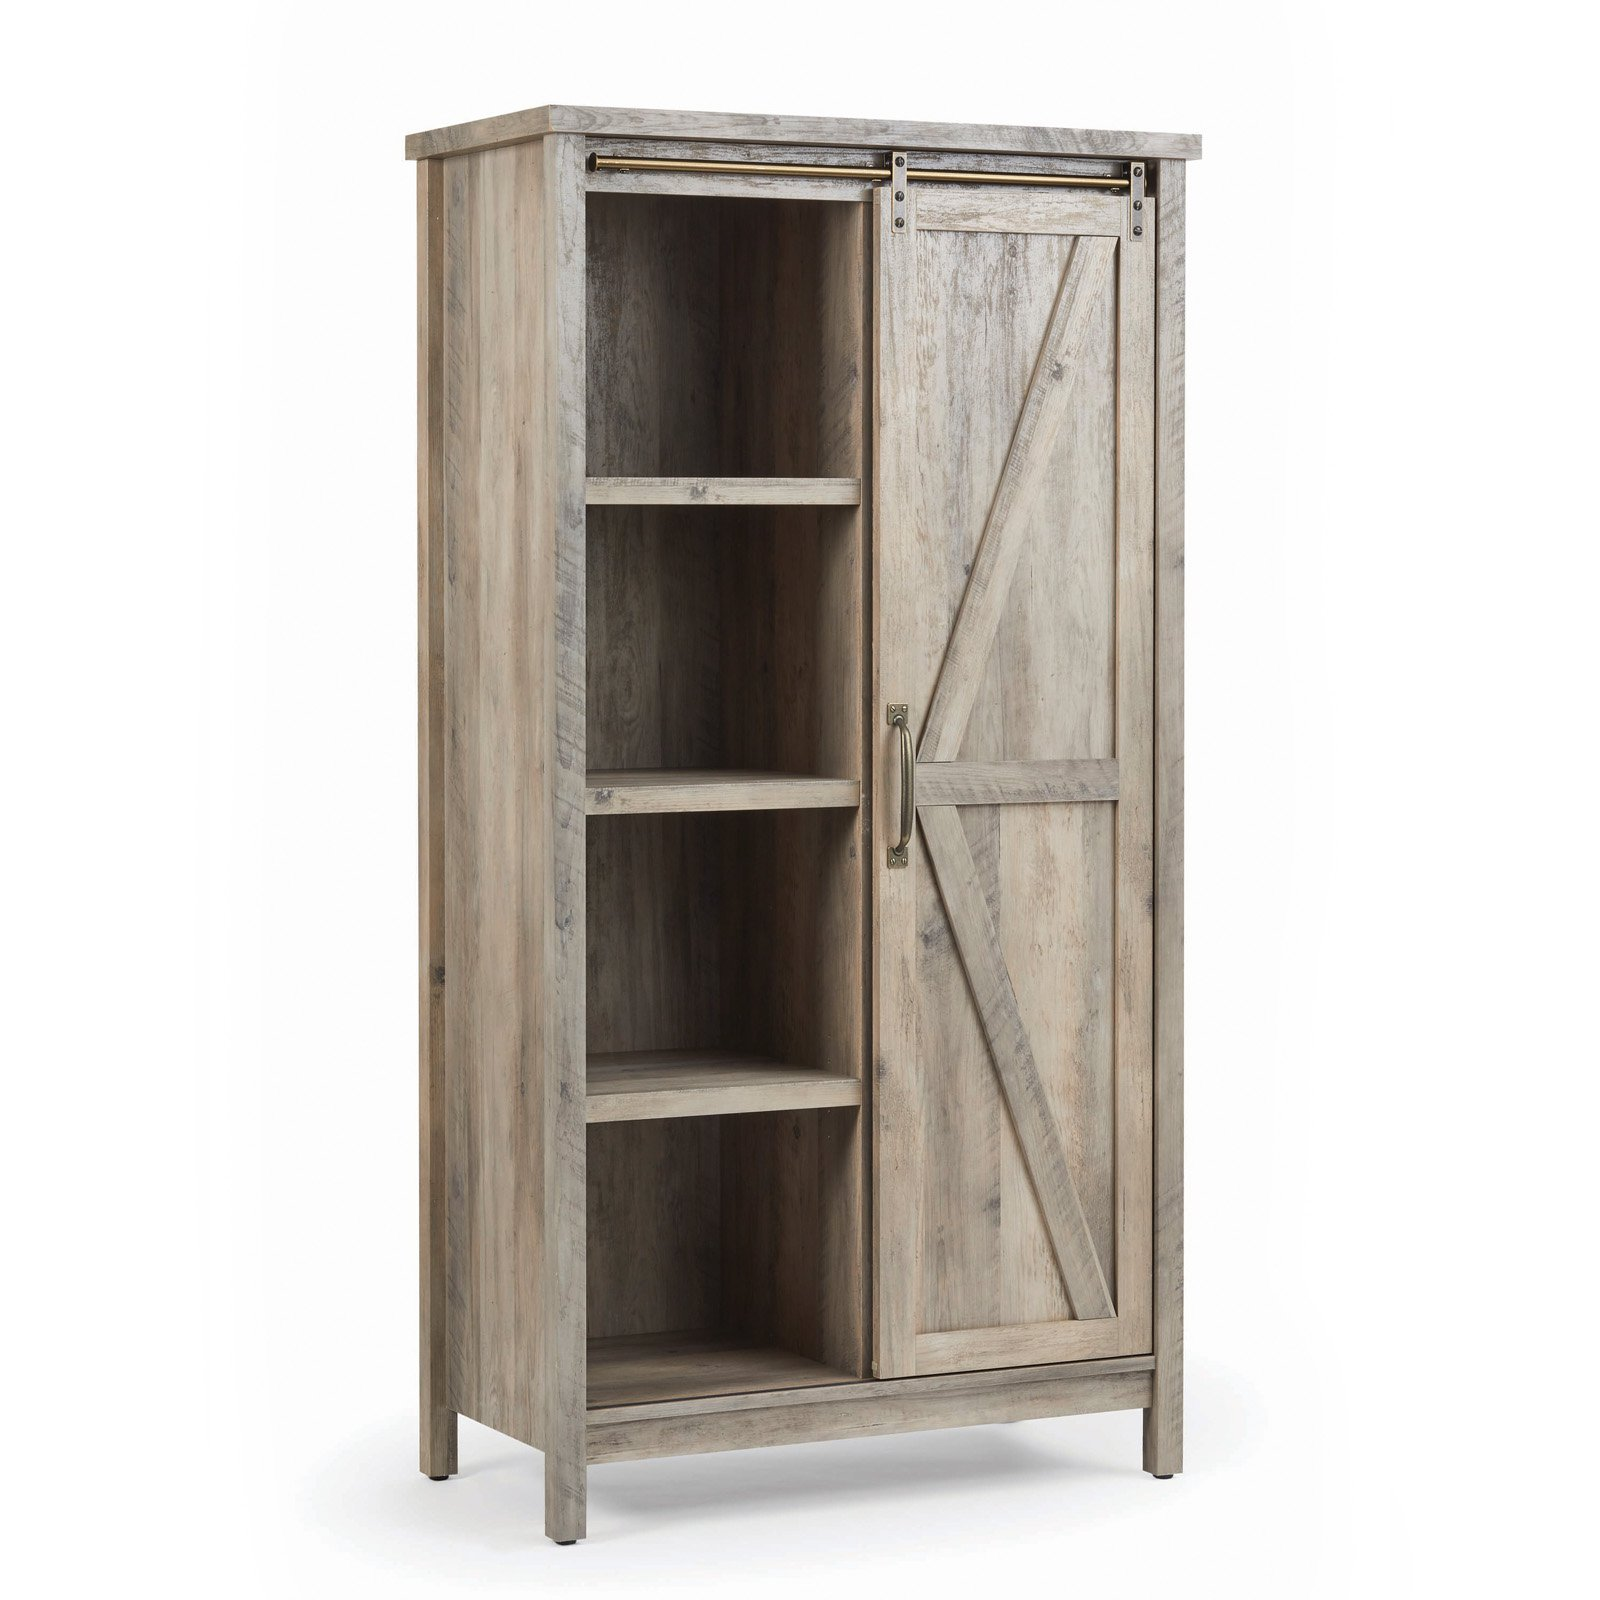 Better Homes and Gardens Modern Farmhouse Storage Cabinet Rustic